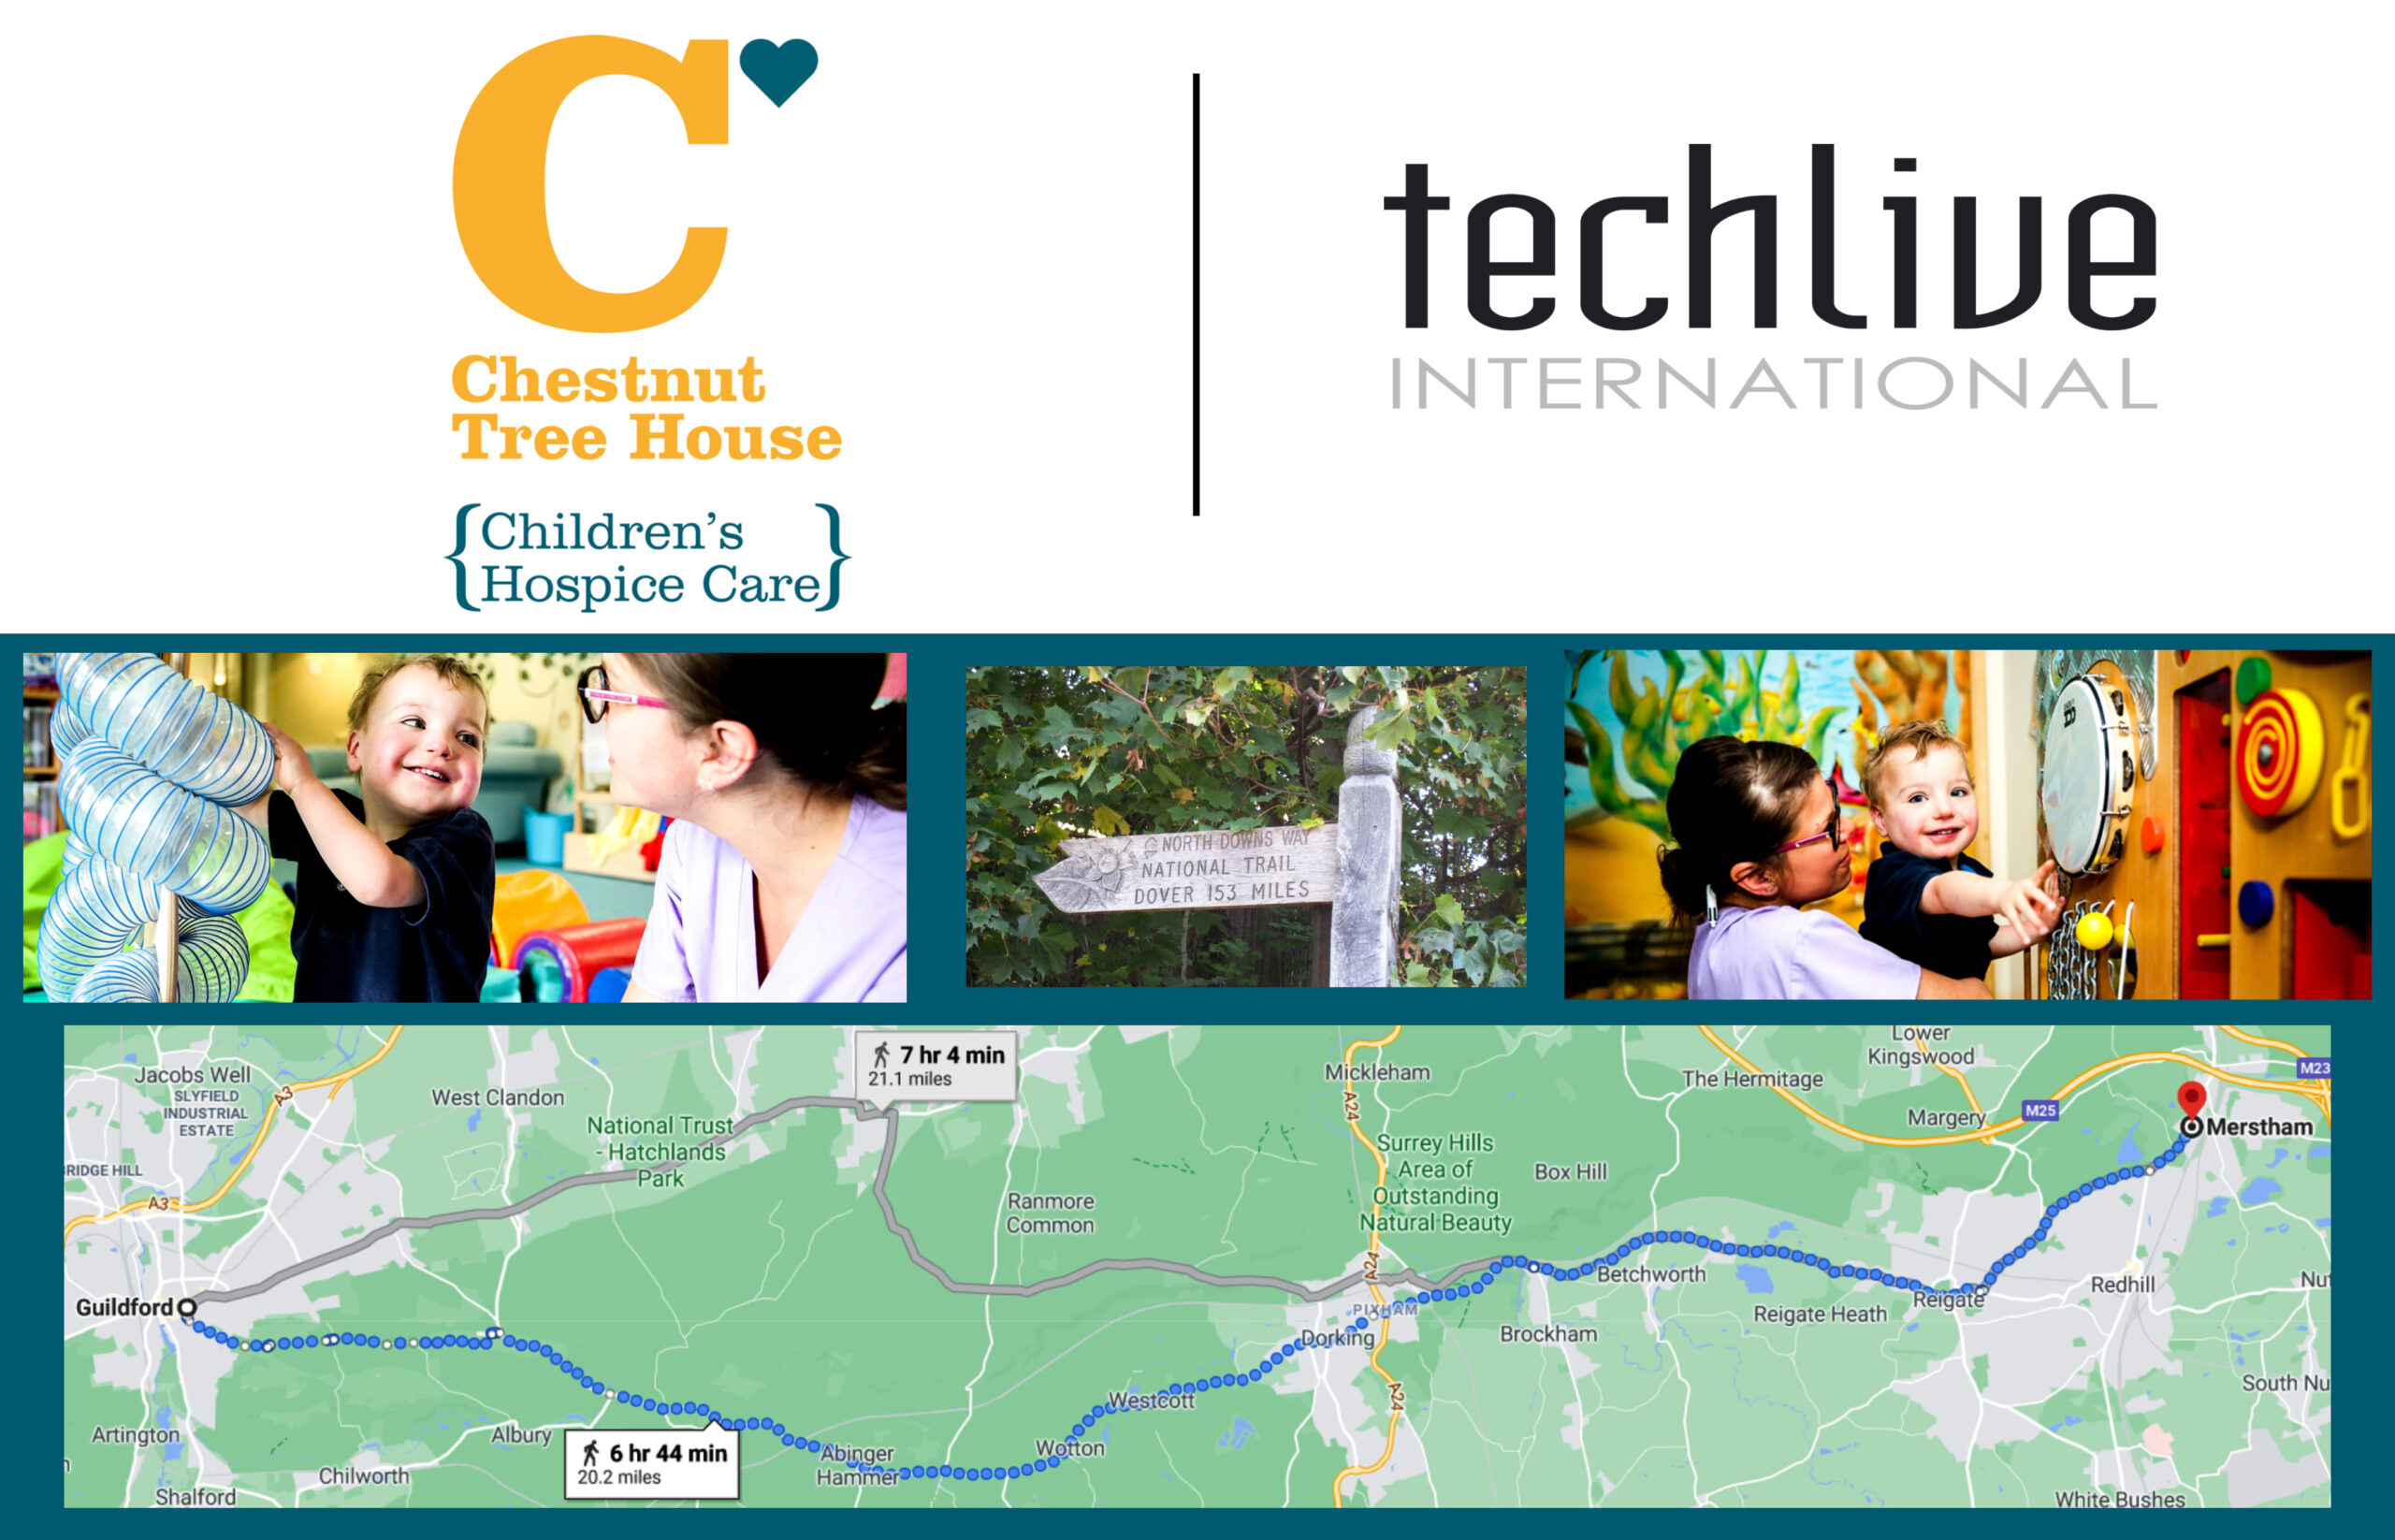 image of the North Downs route that Techlive will be taking to raise money for chestnut tree house